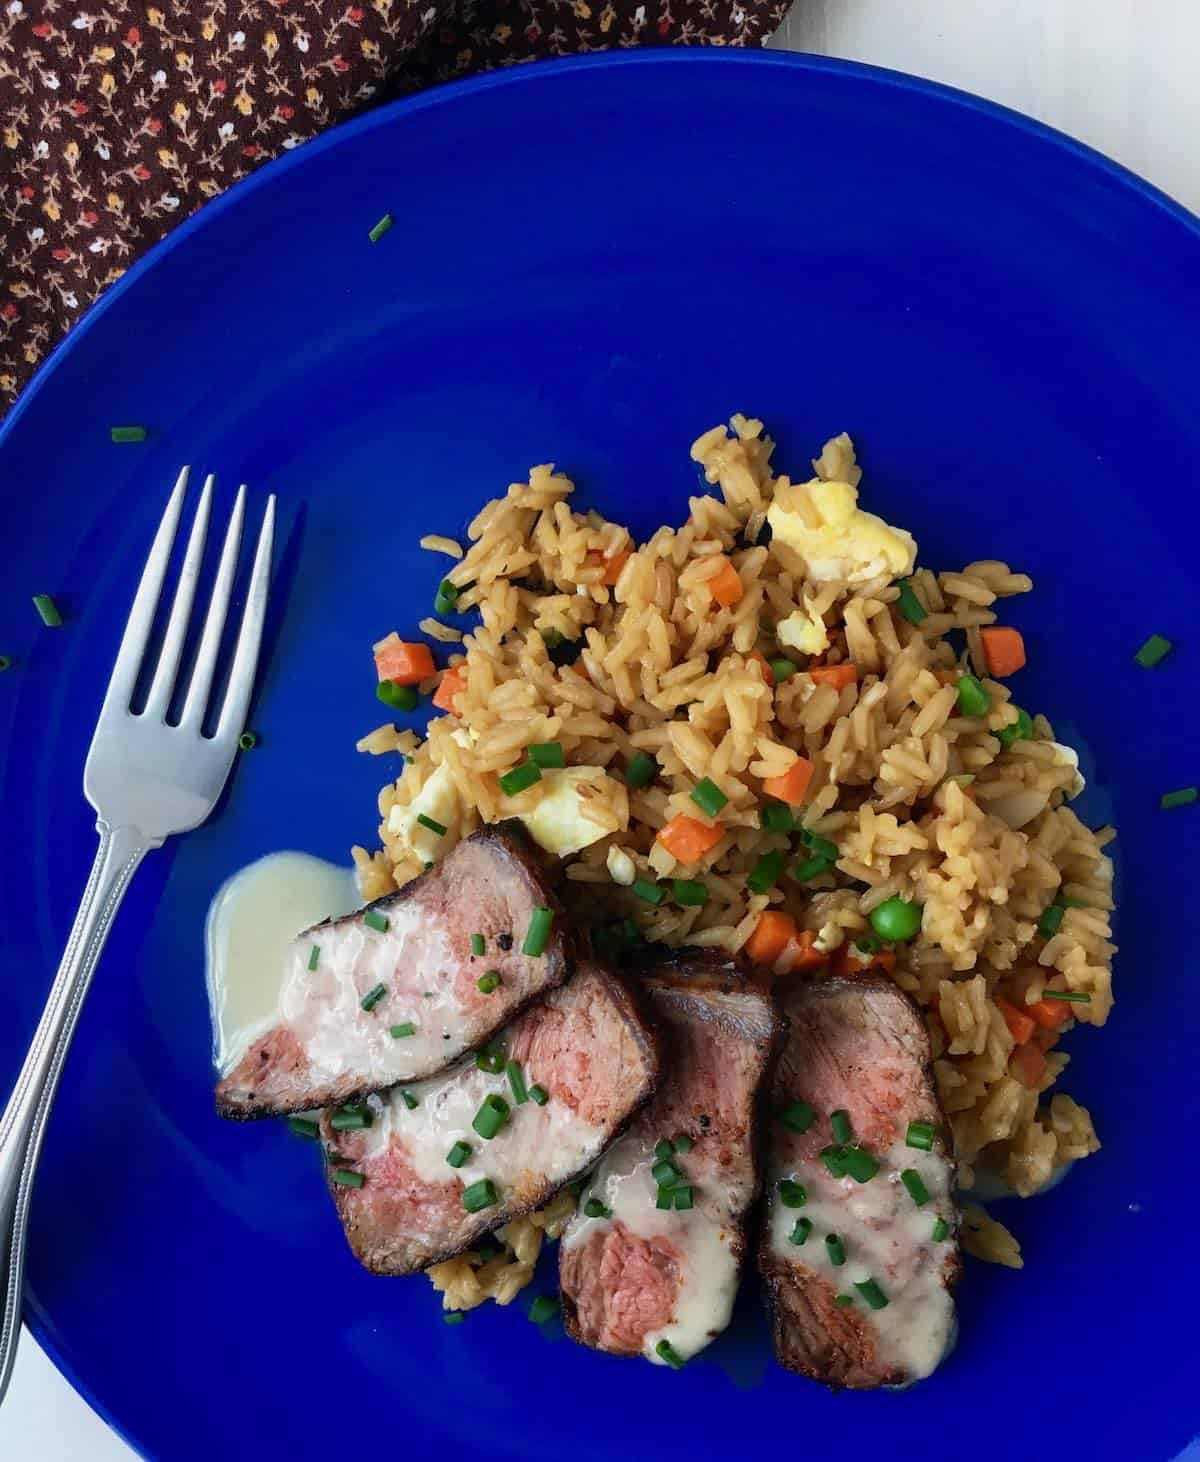 plated steak and fried rice turning the tables